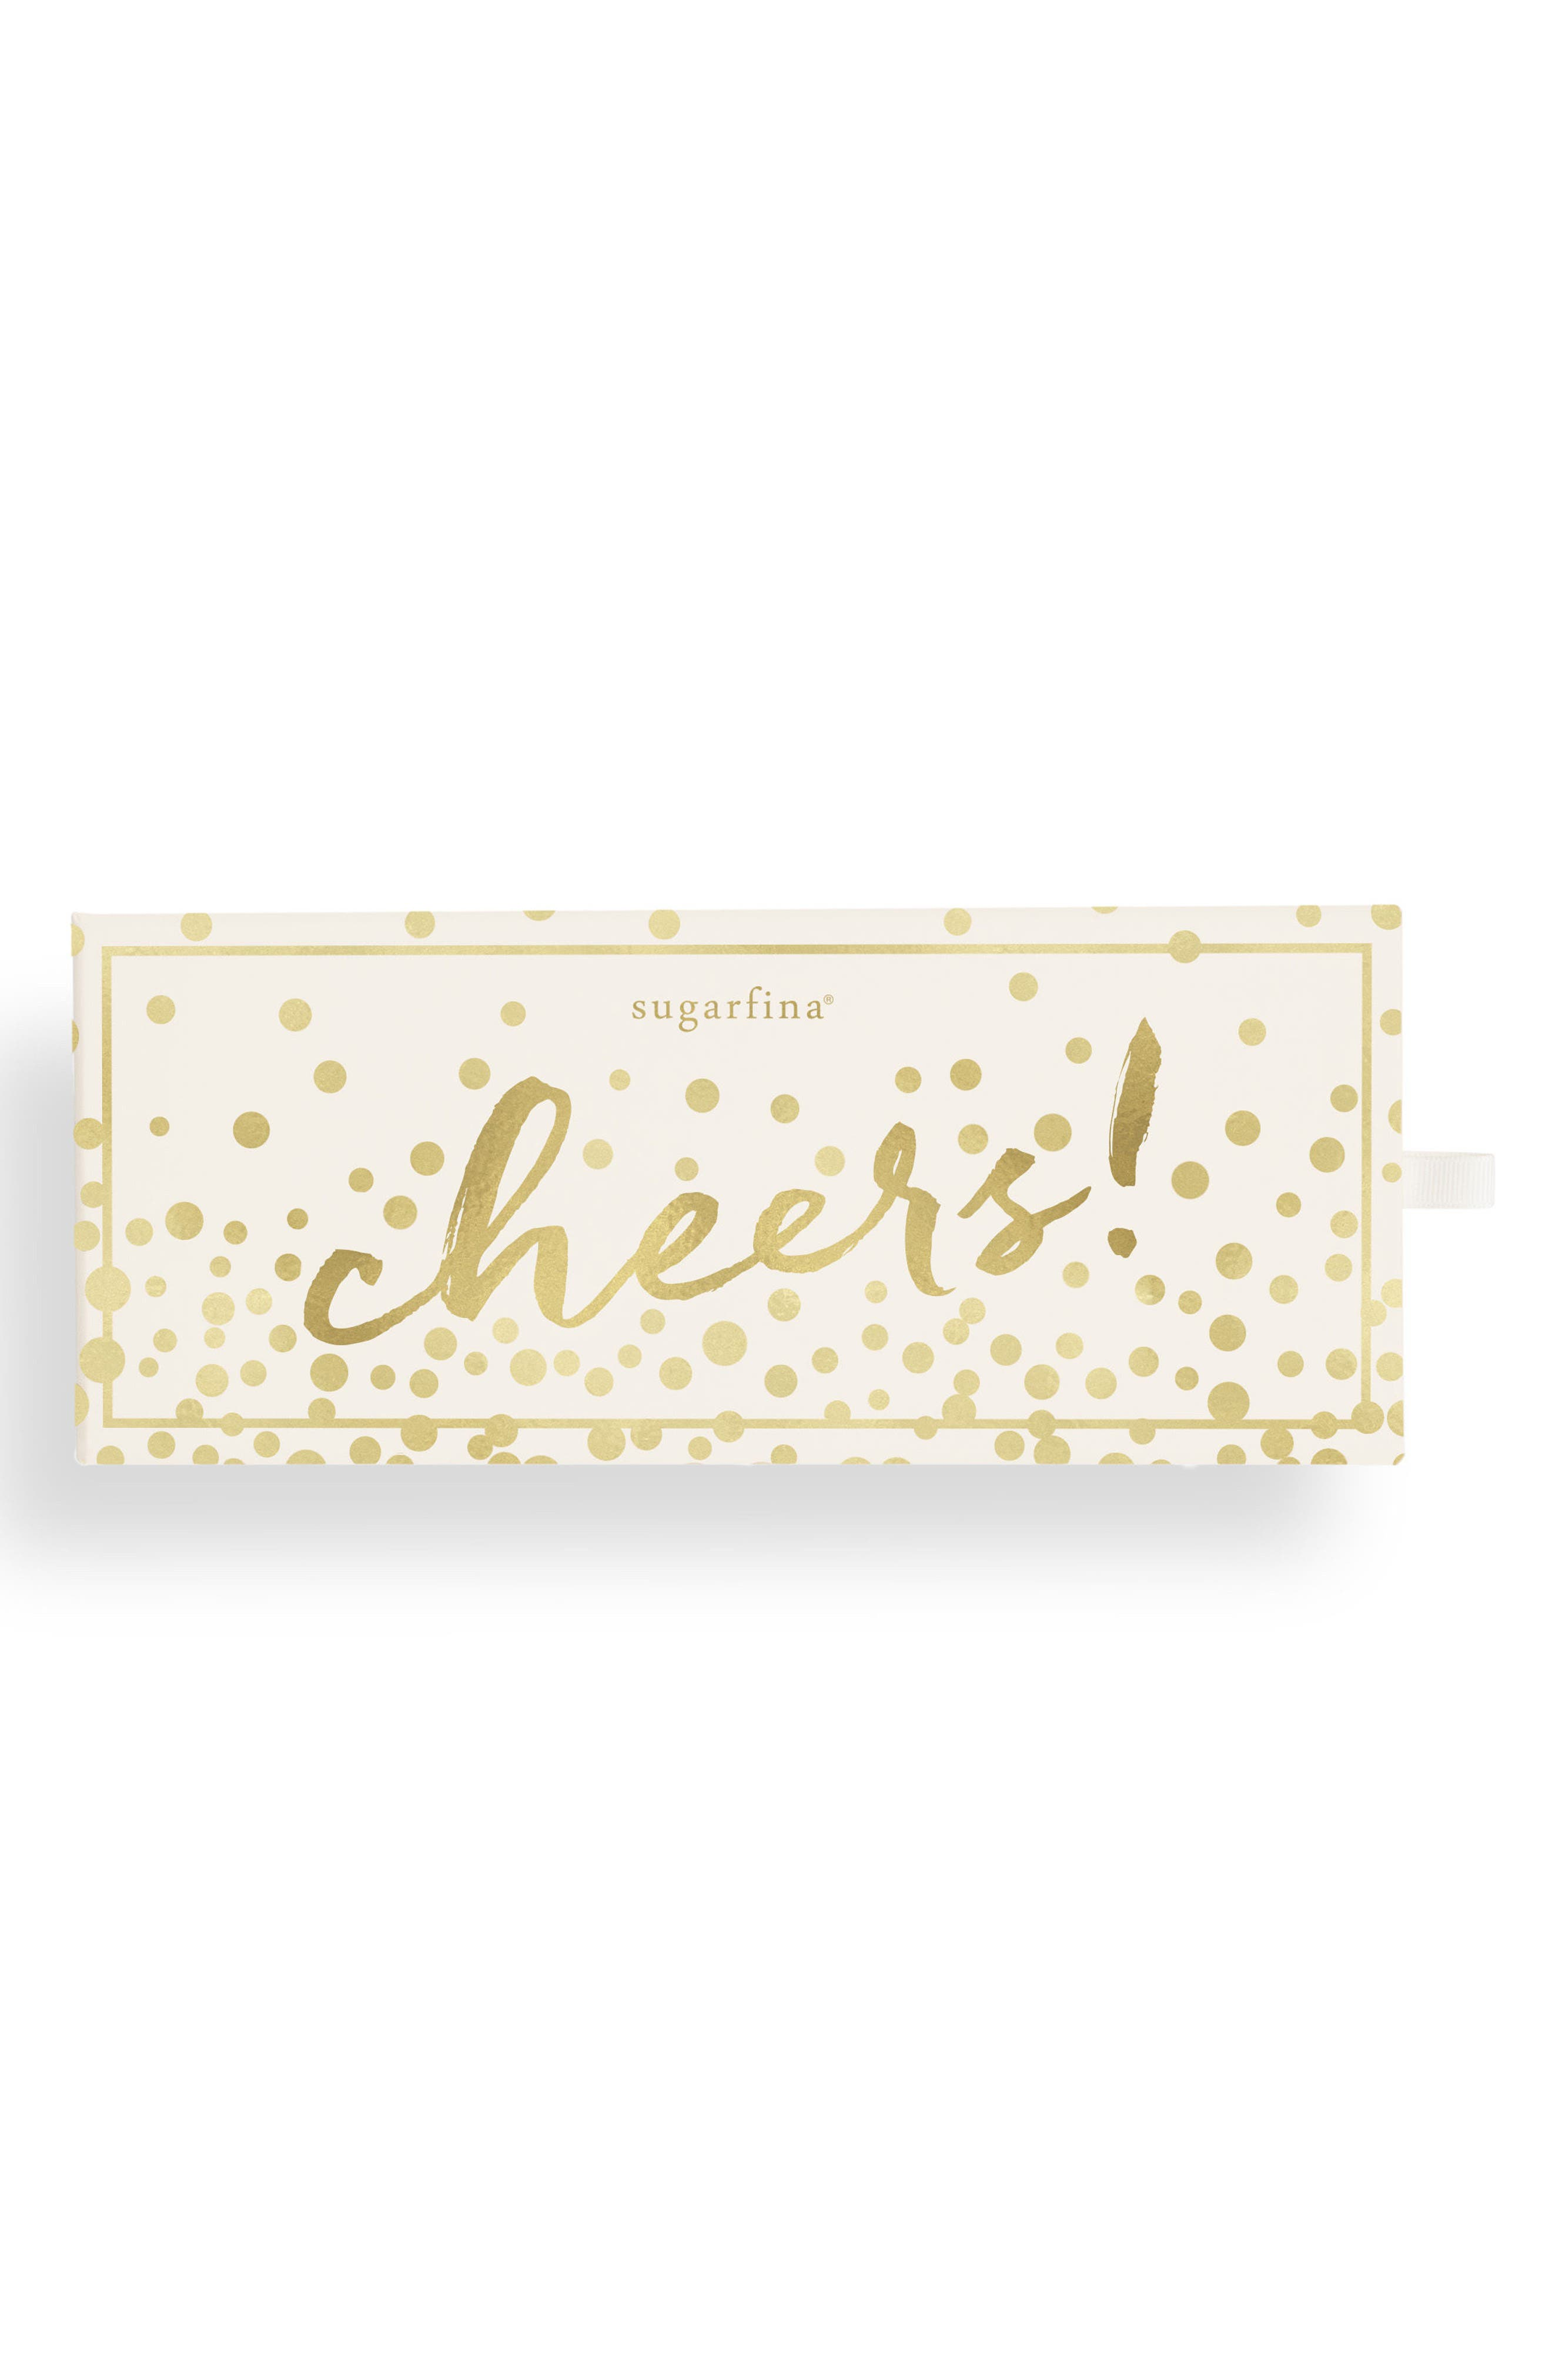 Cheers 3-Piece Candy Bento Box,                             Main thumbnail 1, color,                             White